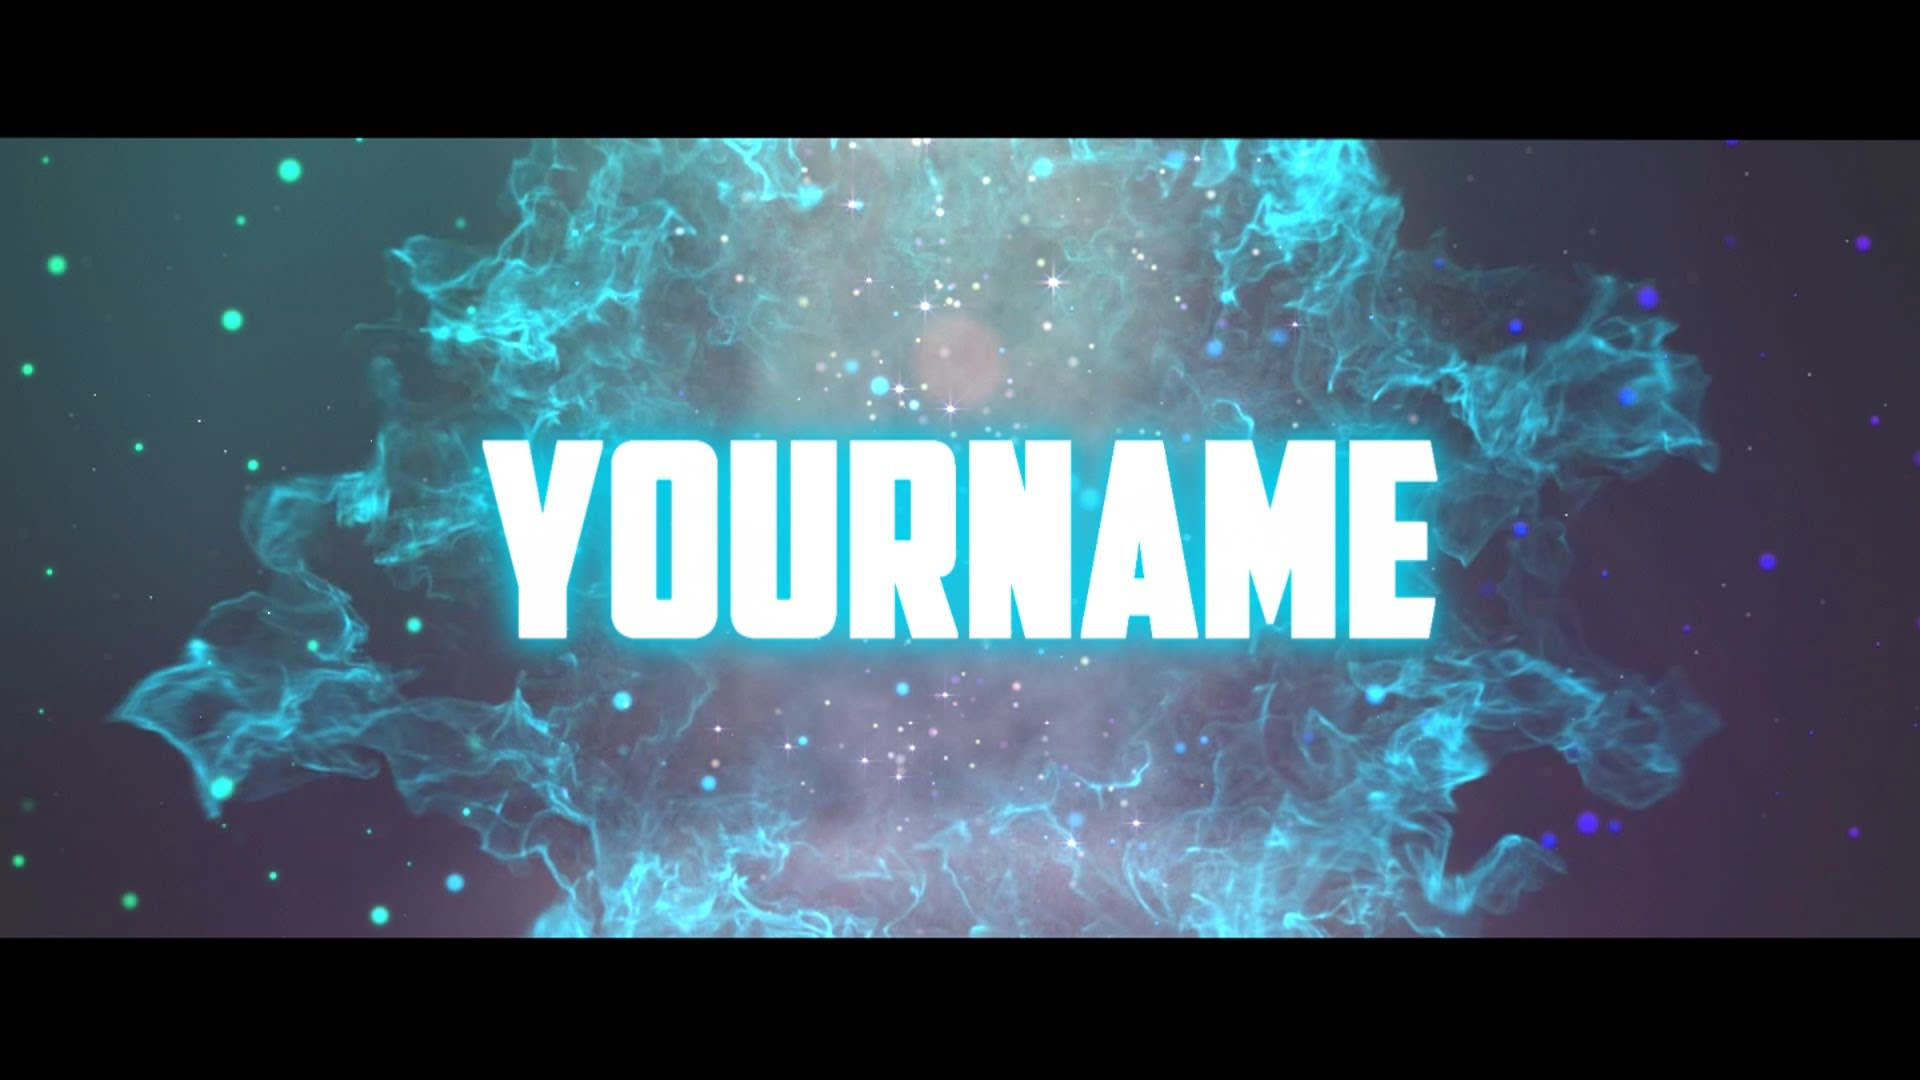 Edit Sony Vegas Pro 9 10 11 12 And 13 2d Intro Templates By Trazox